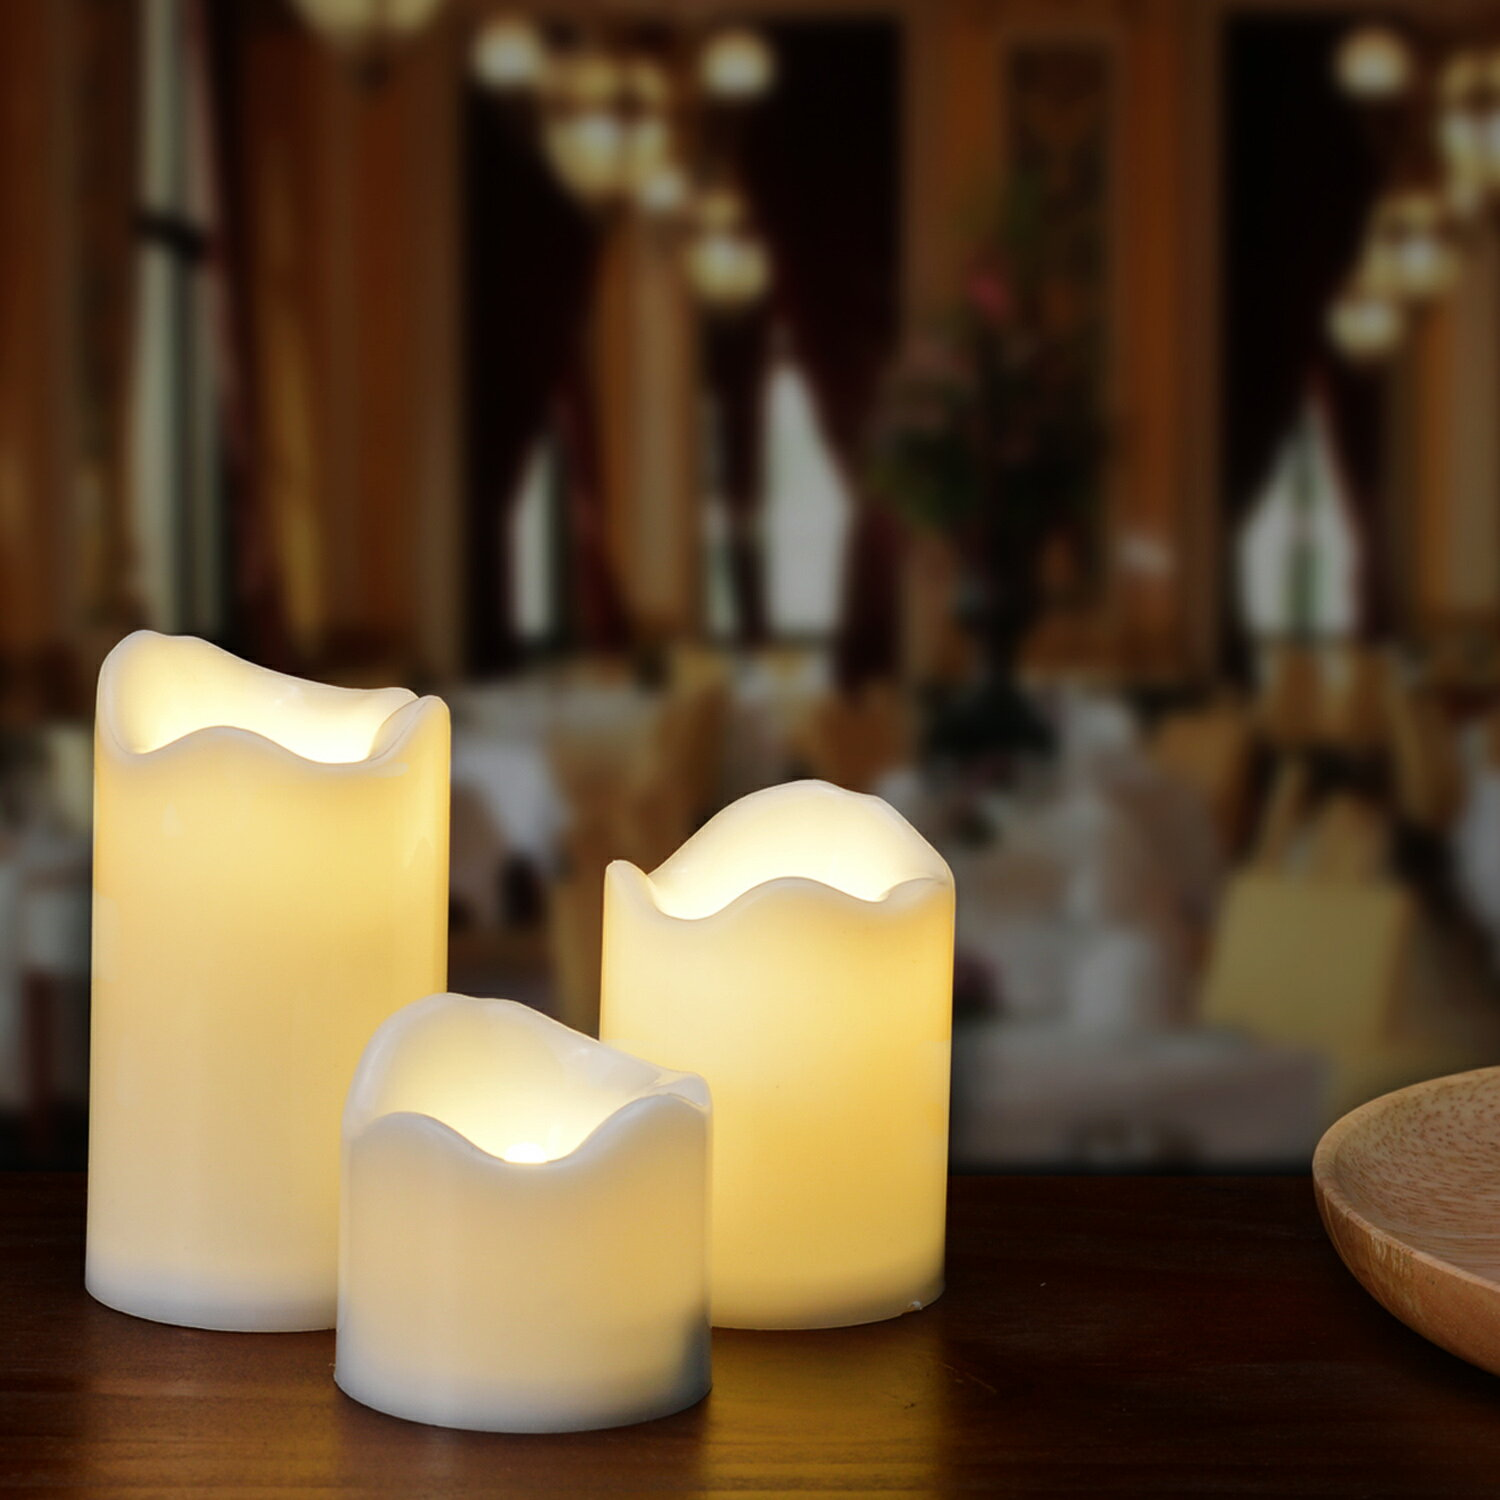 LED Candles Battery Operated Flameless Flickering smokeless 3 PCS/set Premium Votive Candles for Wedding/Party Decorations warm white 2